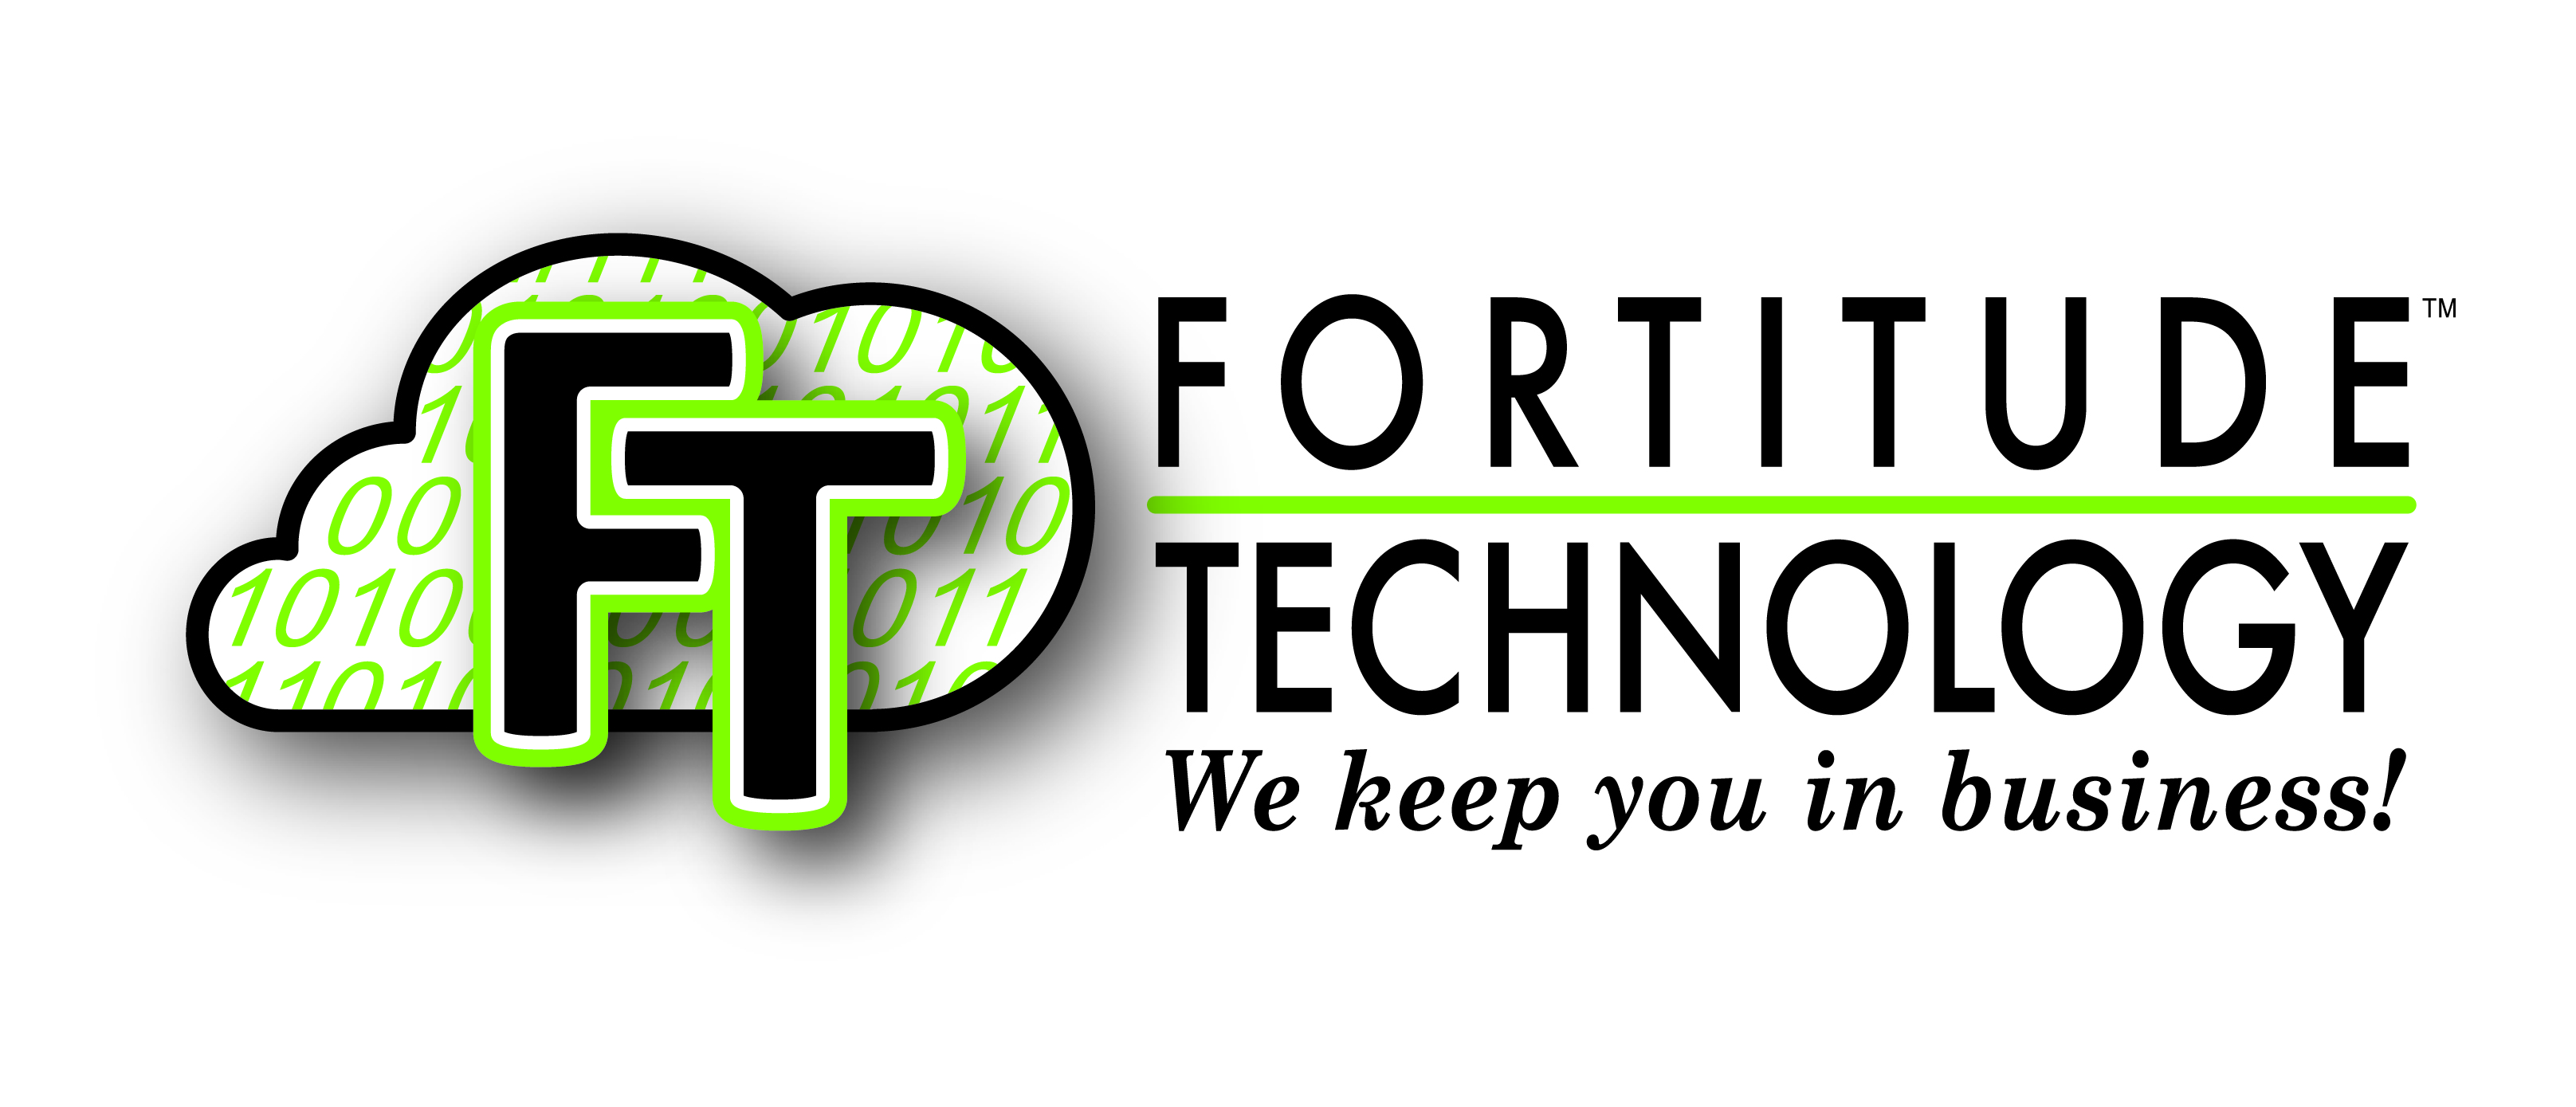 Fortitude Technology, Inc.